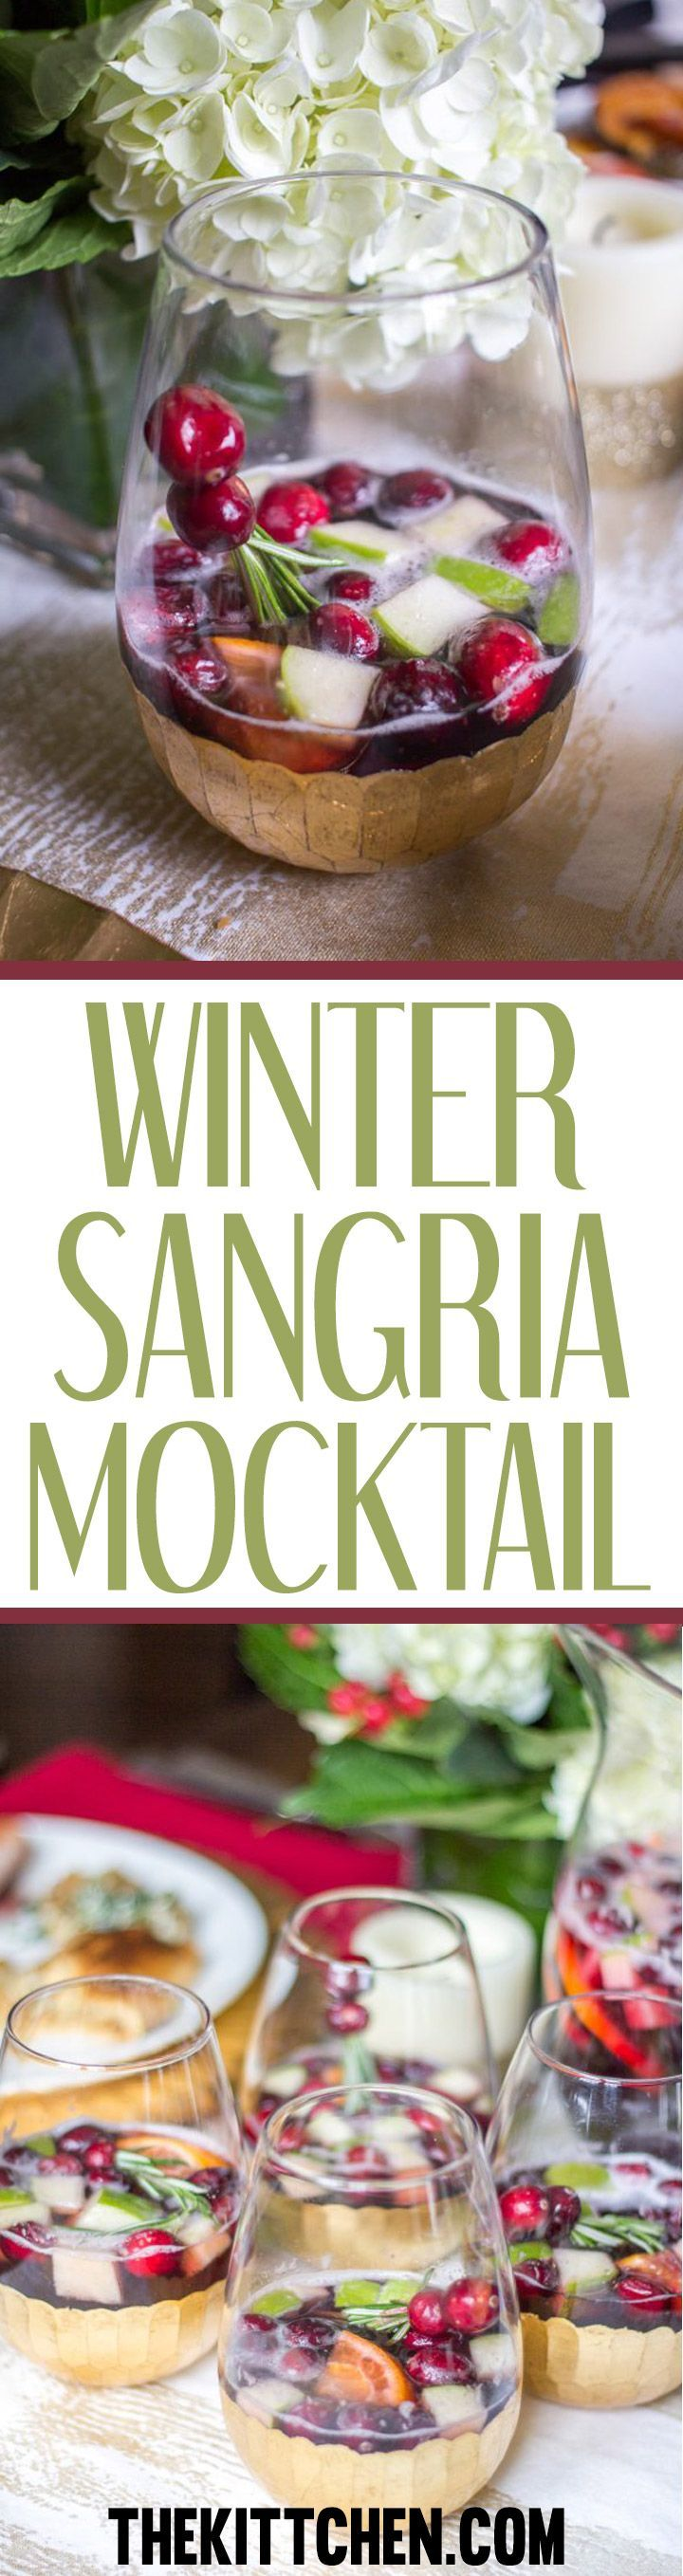 Need a drink to entertain that doesn't have alcohol? Try this fancy winter sangria mocktail that is both festive and tasty. Click to find the very easy recipe! #mocktail #sangria *************************** Mocktail recipes | Mocktail recipes non alcoholic winter | Sangria recipes | Sangria recipes non alcoholic | Winter drinks | Winter drinks non alcoholic